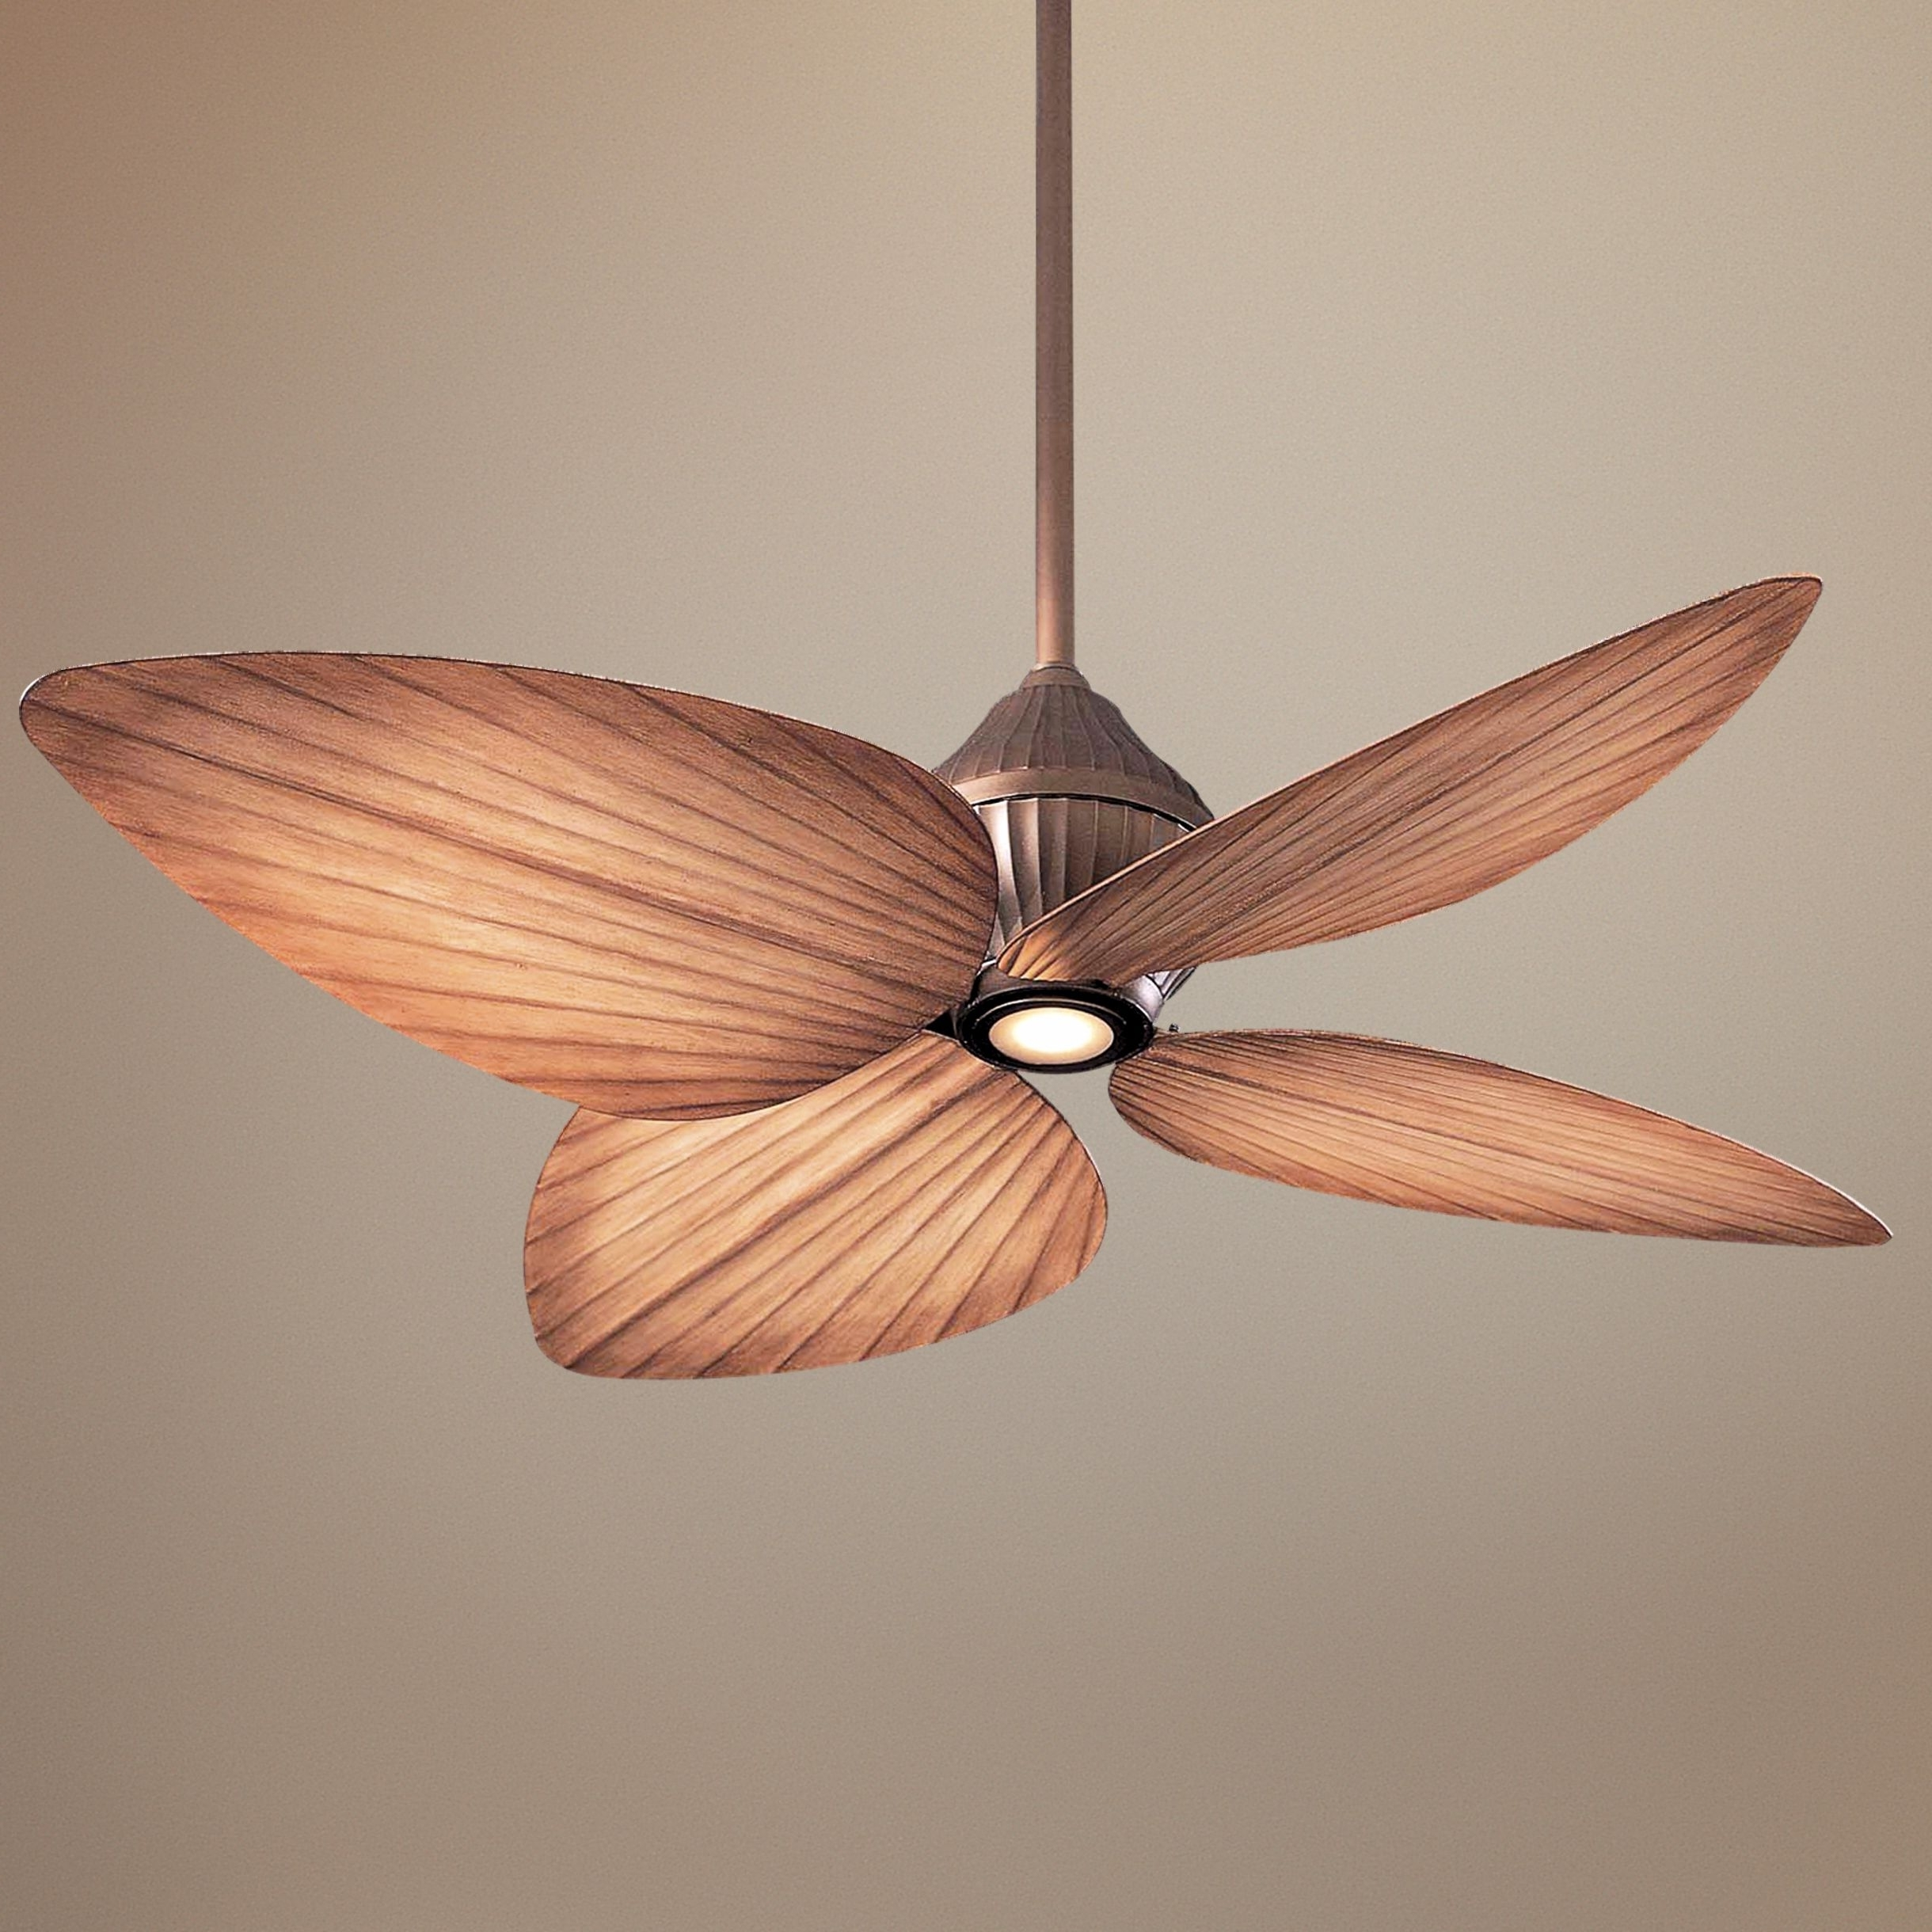 Outdoor Ceiling Fans With Bamboo Blades Regarding Most Recently Released Ceiling: Stunning Palm Leaf Ceiling Fan Wicker Ceiling Fans, Bamboo (Gallery 20 of 20)